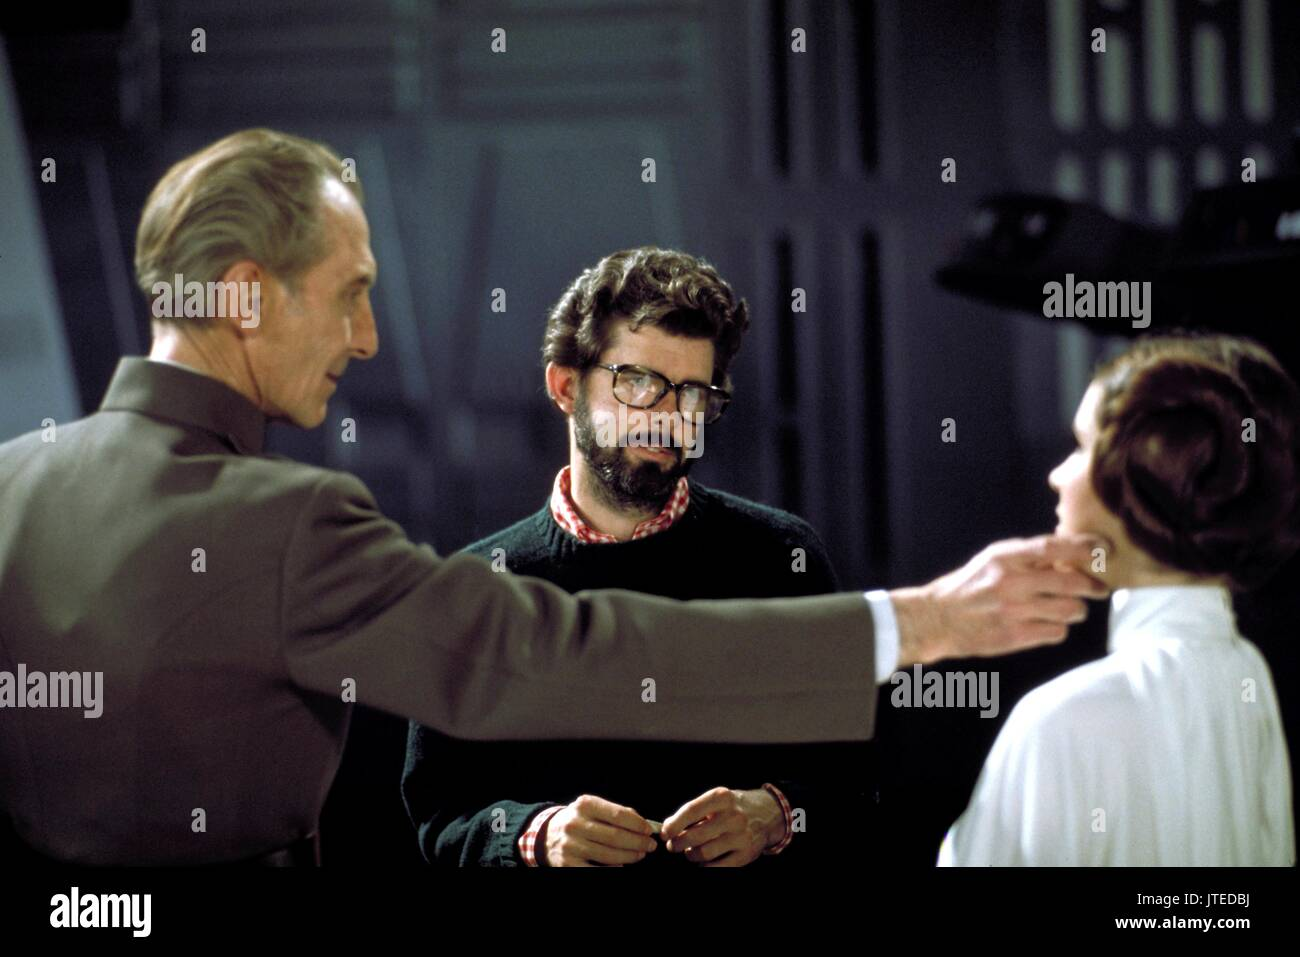 PETER CUSHING, GEORGE LUCAS, CARRIE FISHER, STAR WARS: EPISODE IV - A NEW HOPE, 1977 - Stock Image